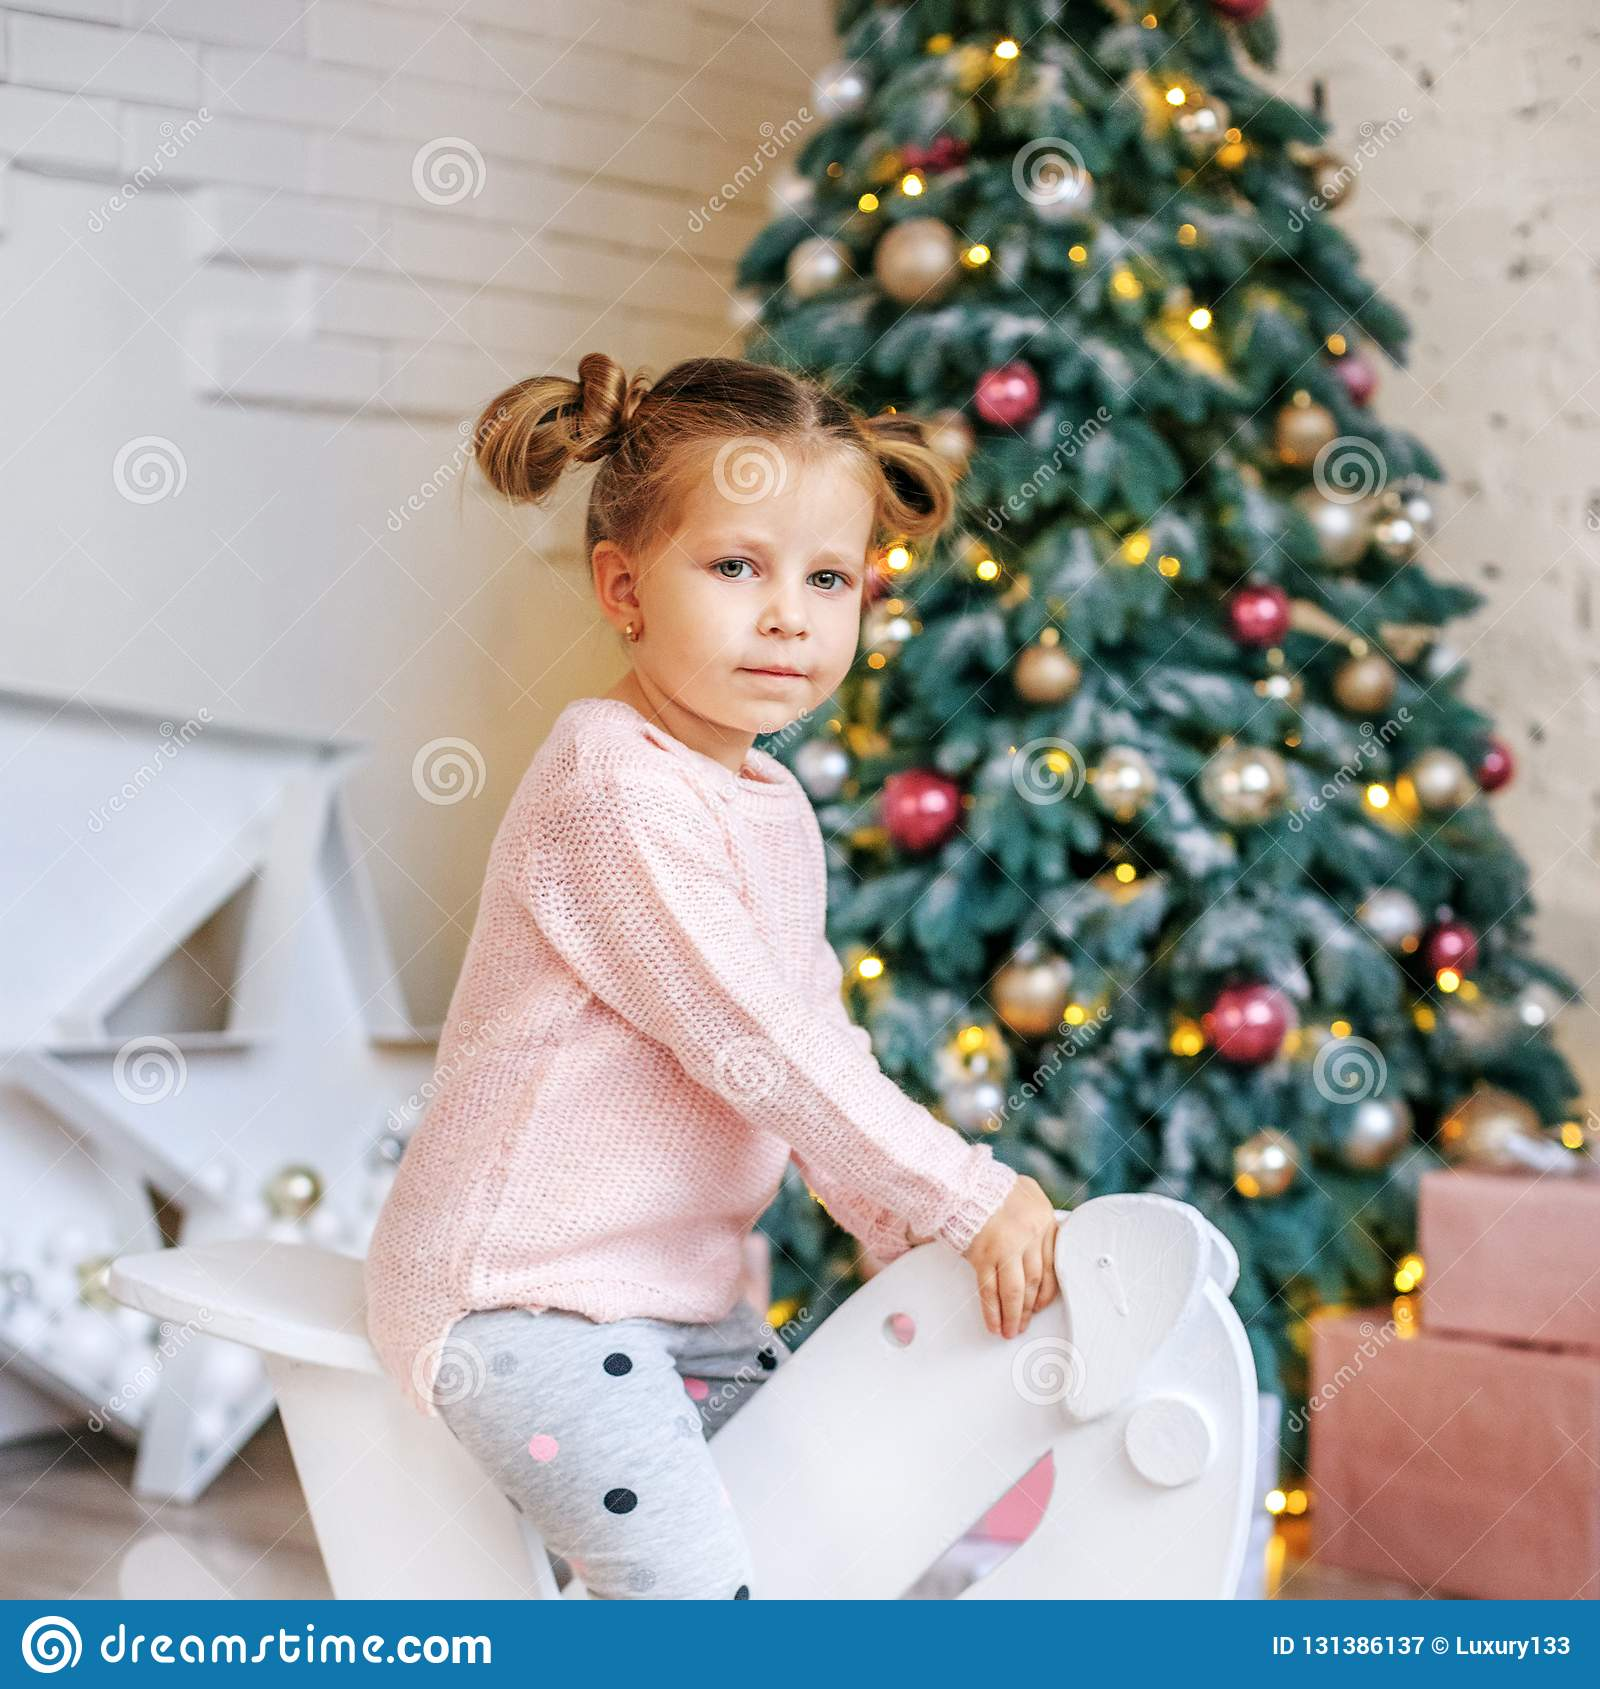 Girl 3 years old riding a horse. Concept New Year, Merry Christm